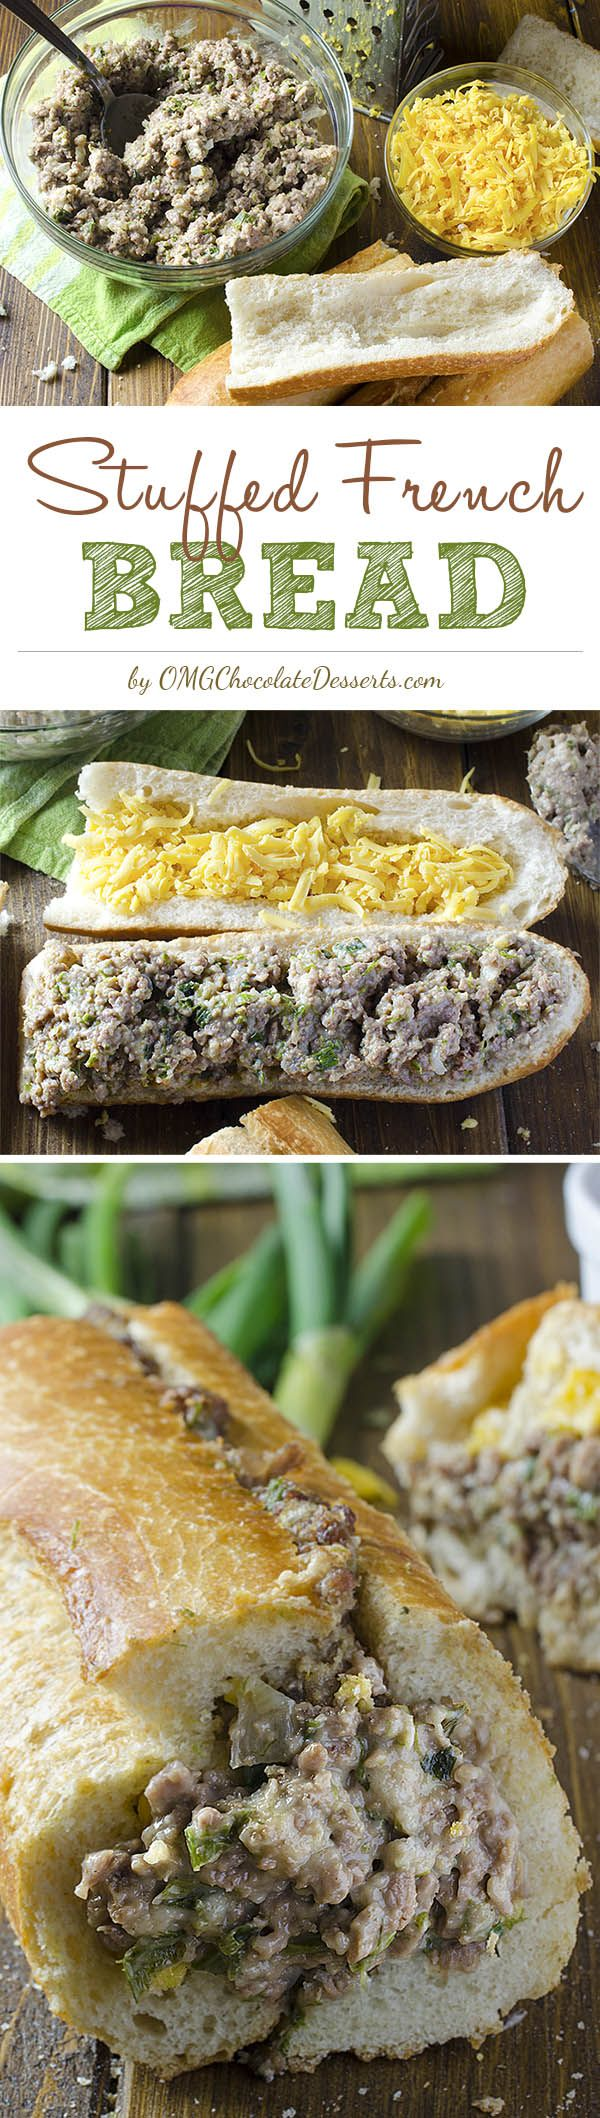 Stuffed French Bread | OMGChocolateDesserts.com | #french #bread #recipe